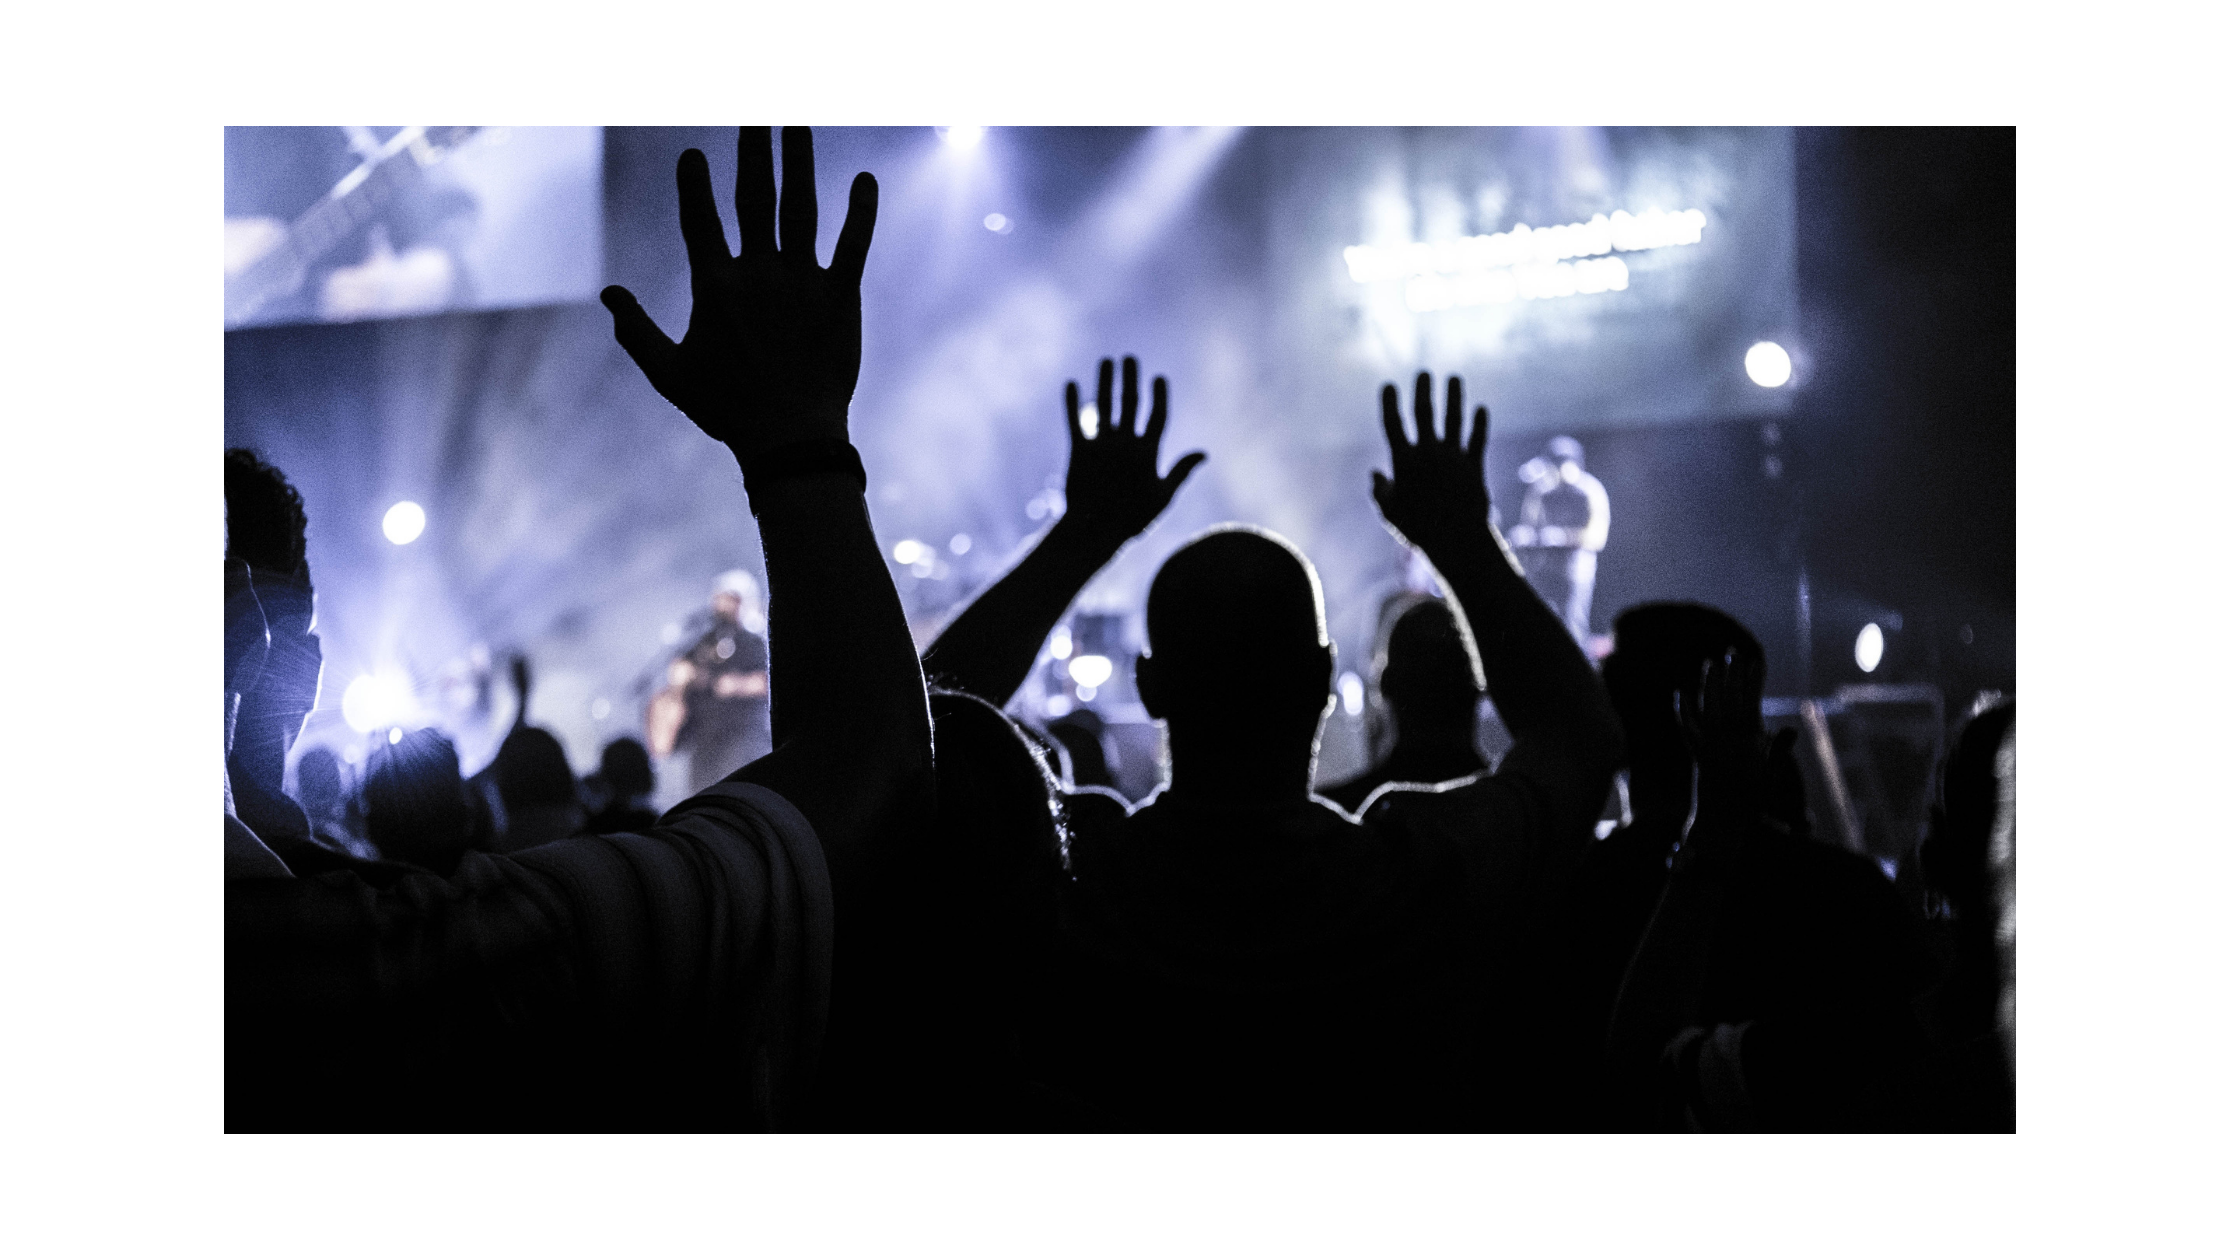 Jaw-Dropping Worship Moments - Worship at a Concert